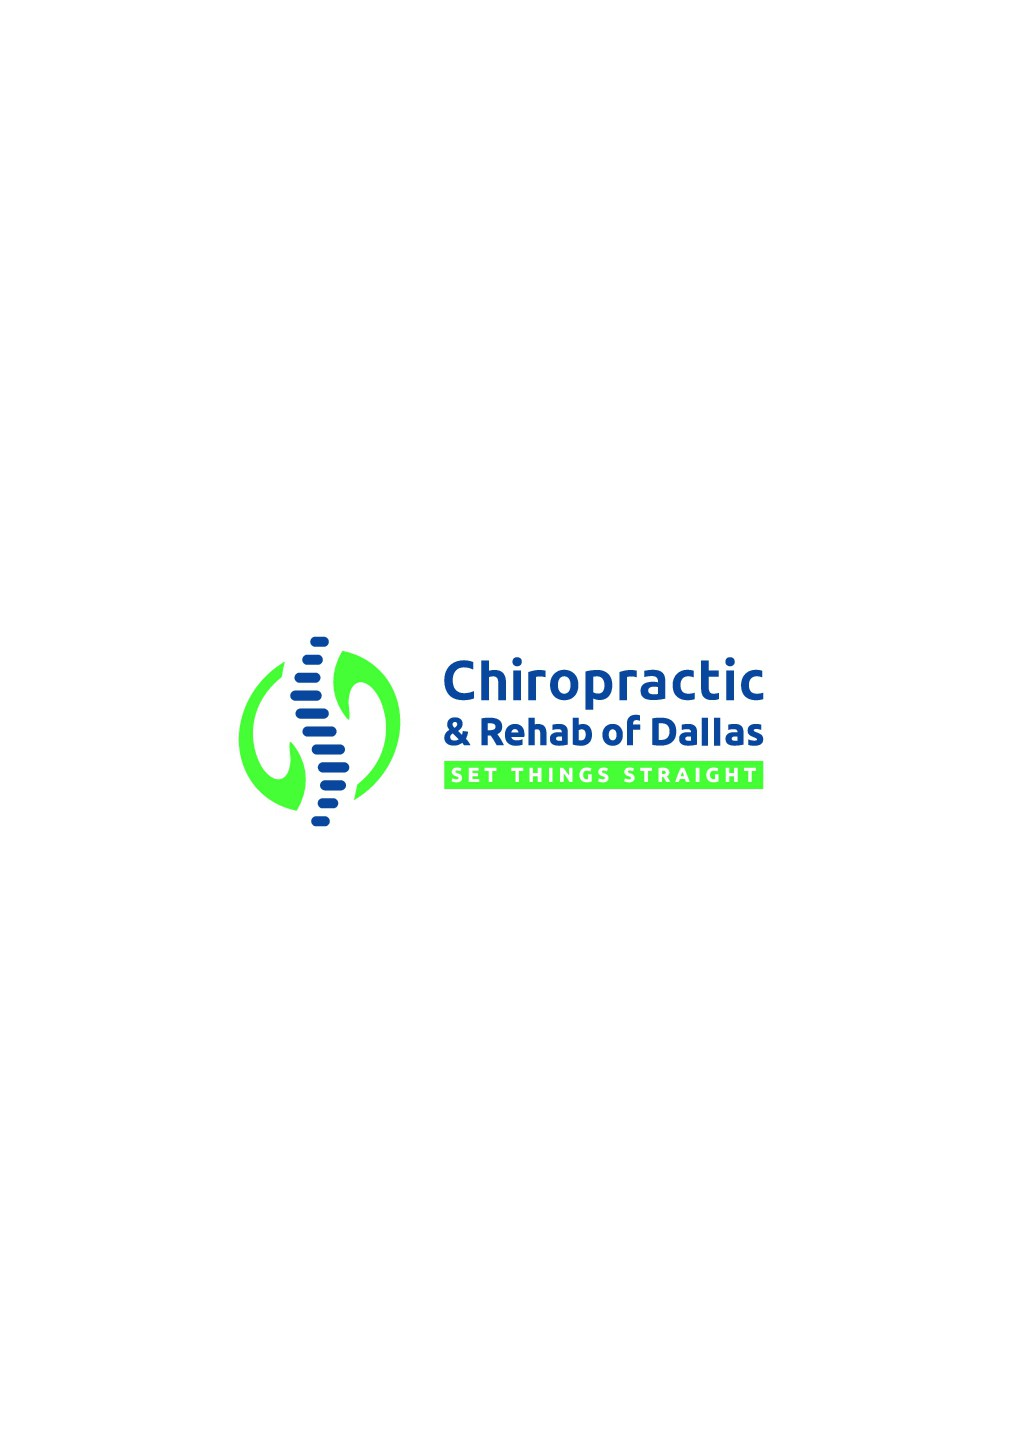 Two Chiropractic offices looking to unify with one logo